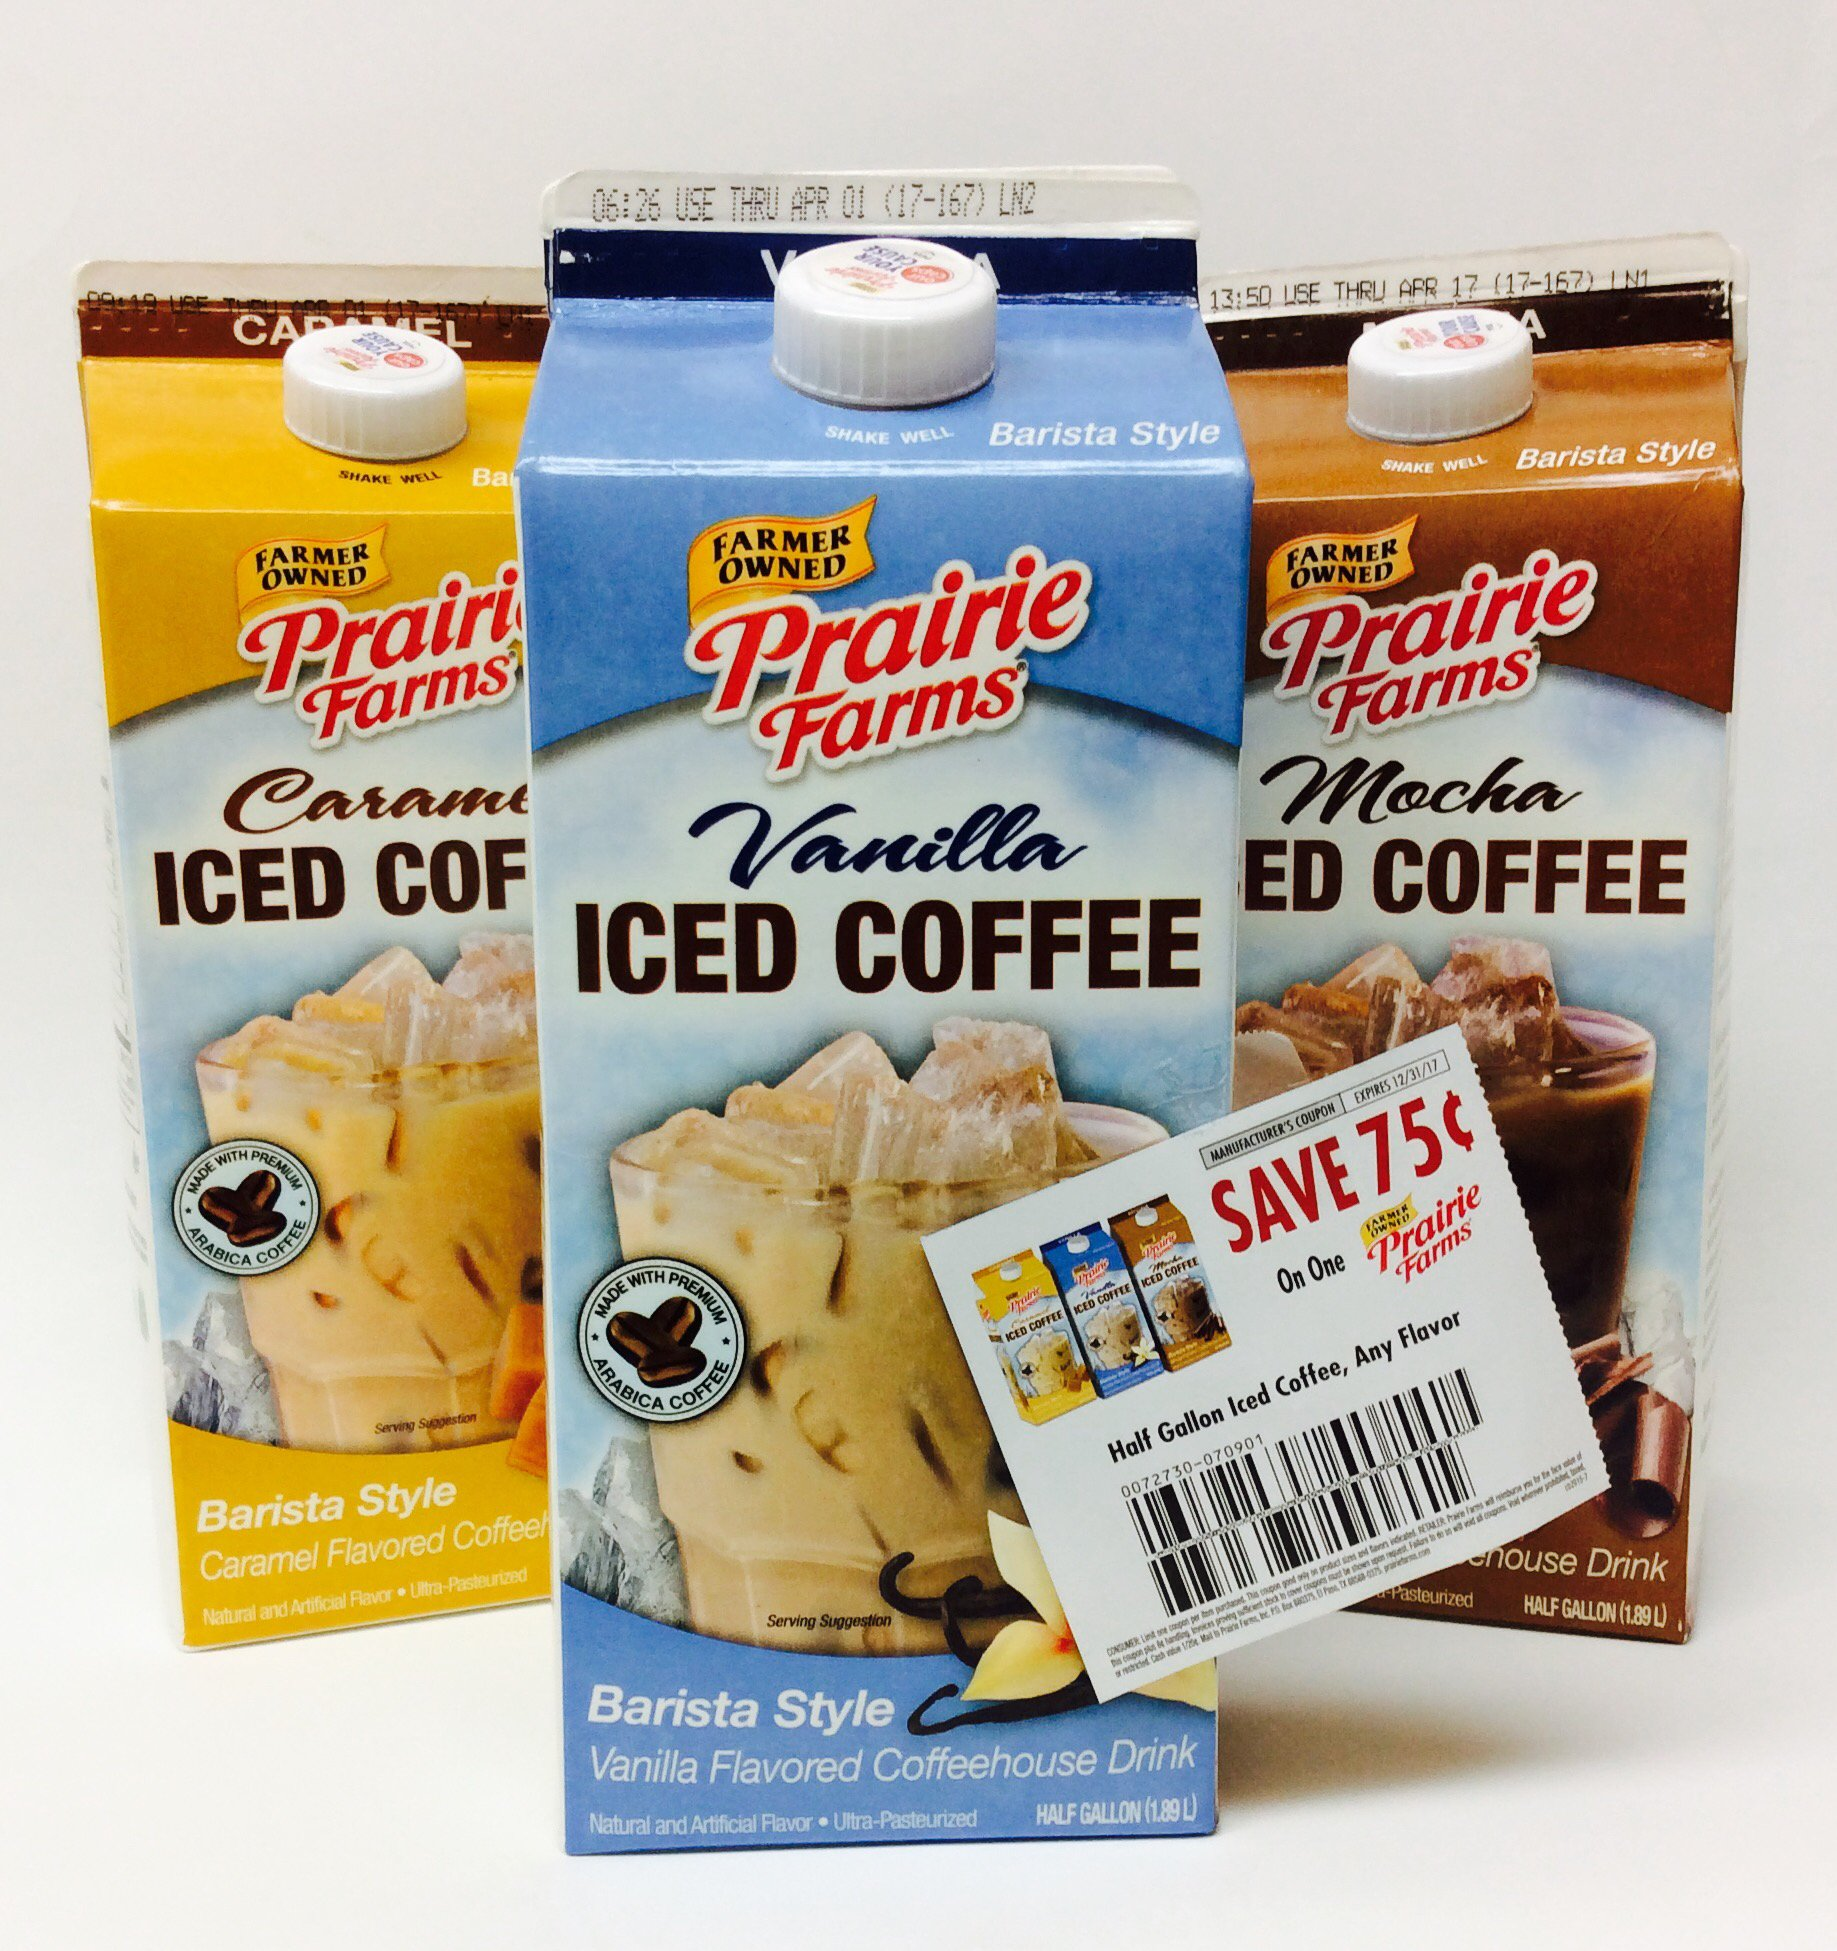 Woodmans Food Market On Twitter Get A Morning Boost From Prairie Farms Iced Coffee Each Flavor Only 2 24 After In Store Coupon Whilesupplieslast Https T Co 4cqwsc4jt6